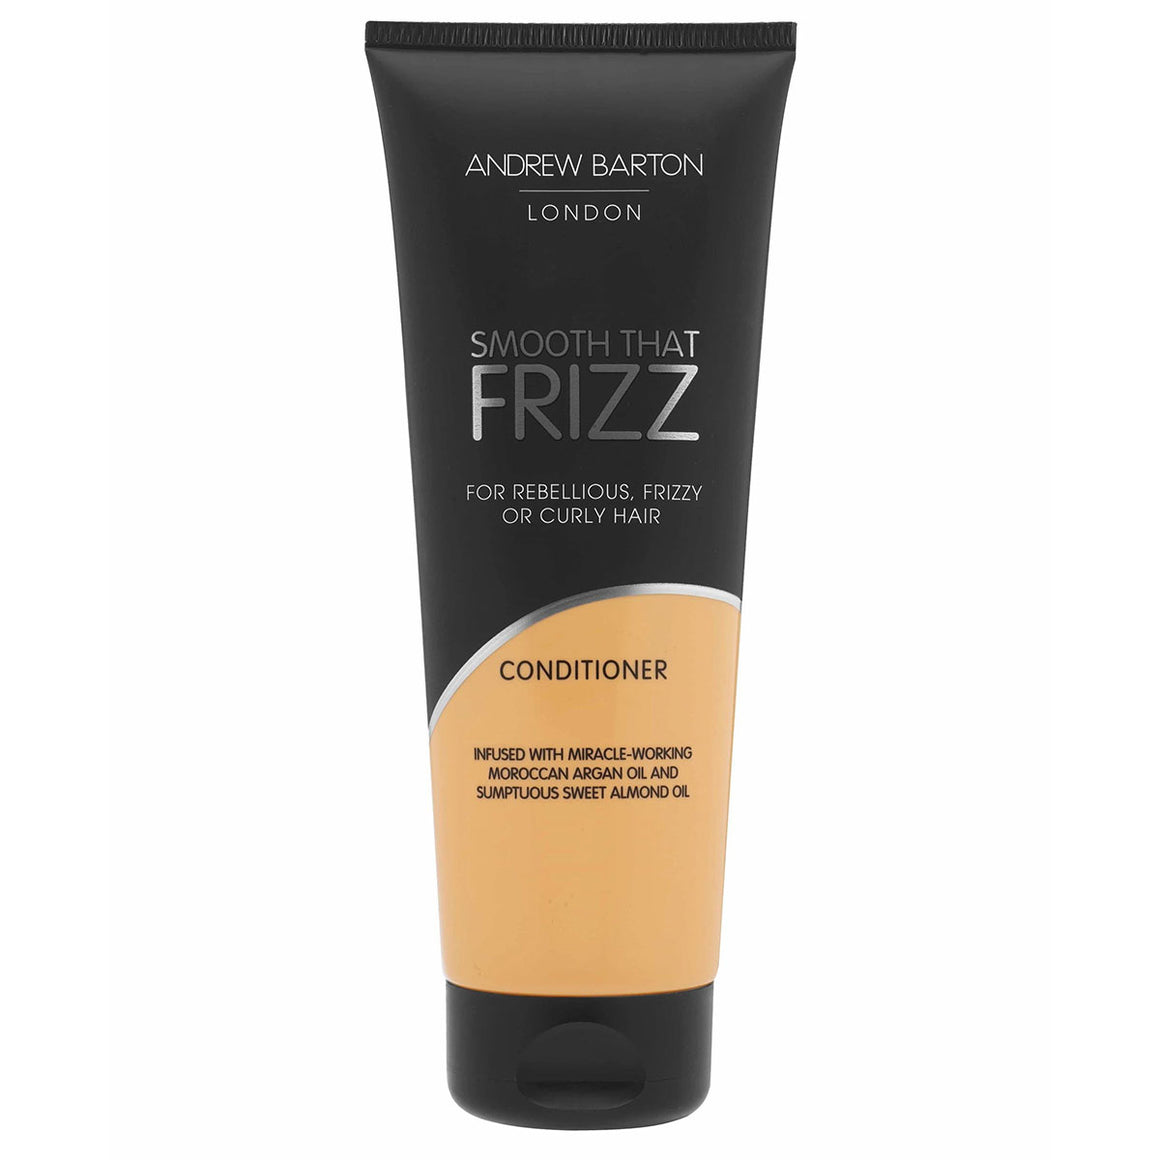 Andrew Barton Smooth That Frizz Conditioner-250ml at BD Budget Beauty (BBB)